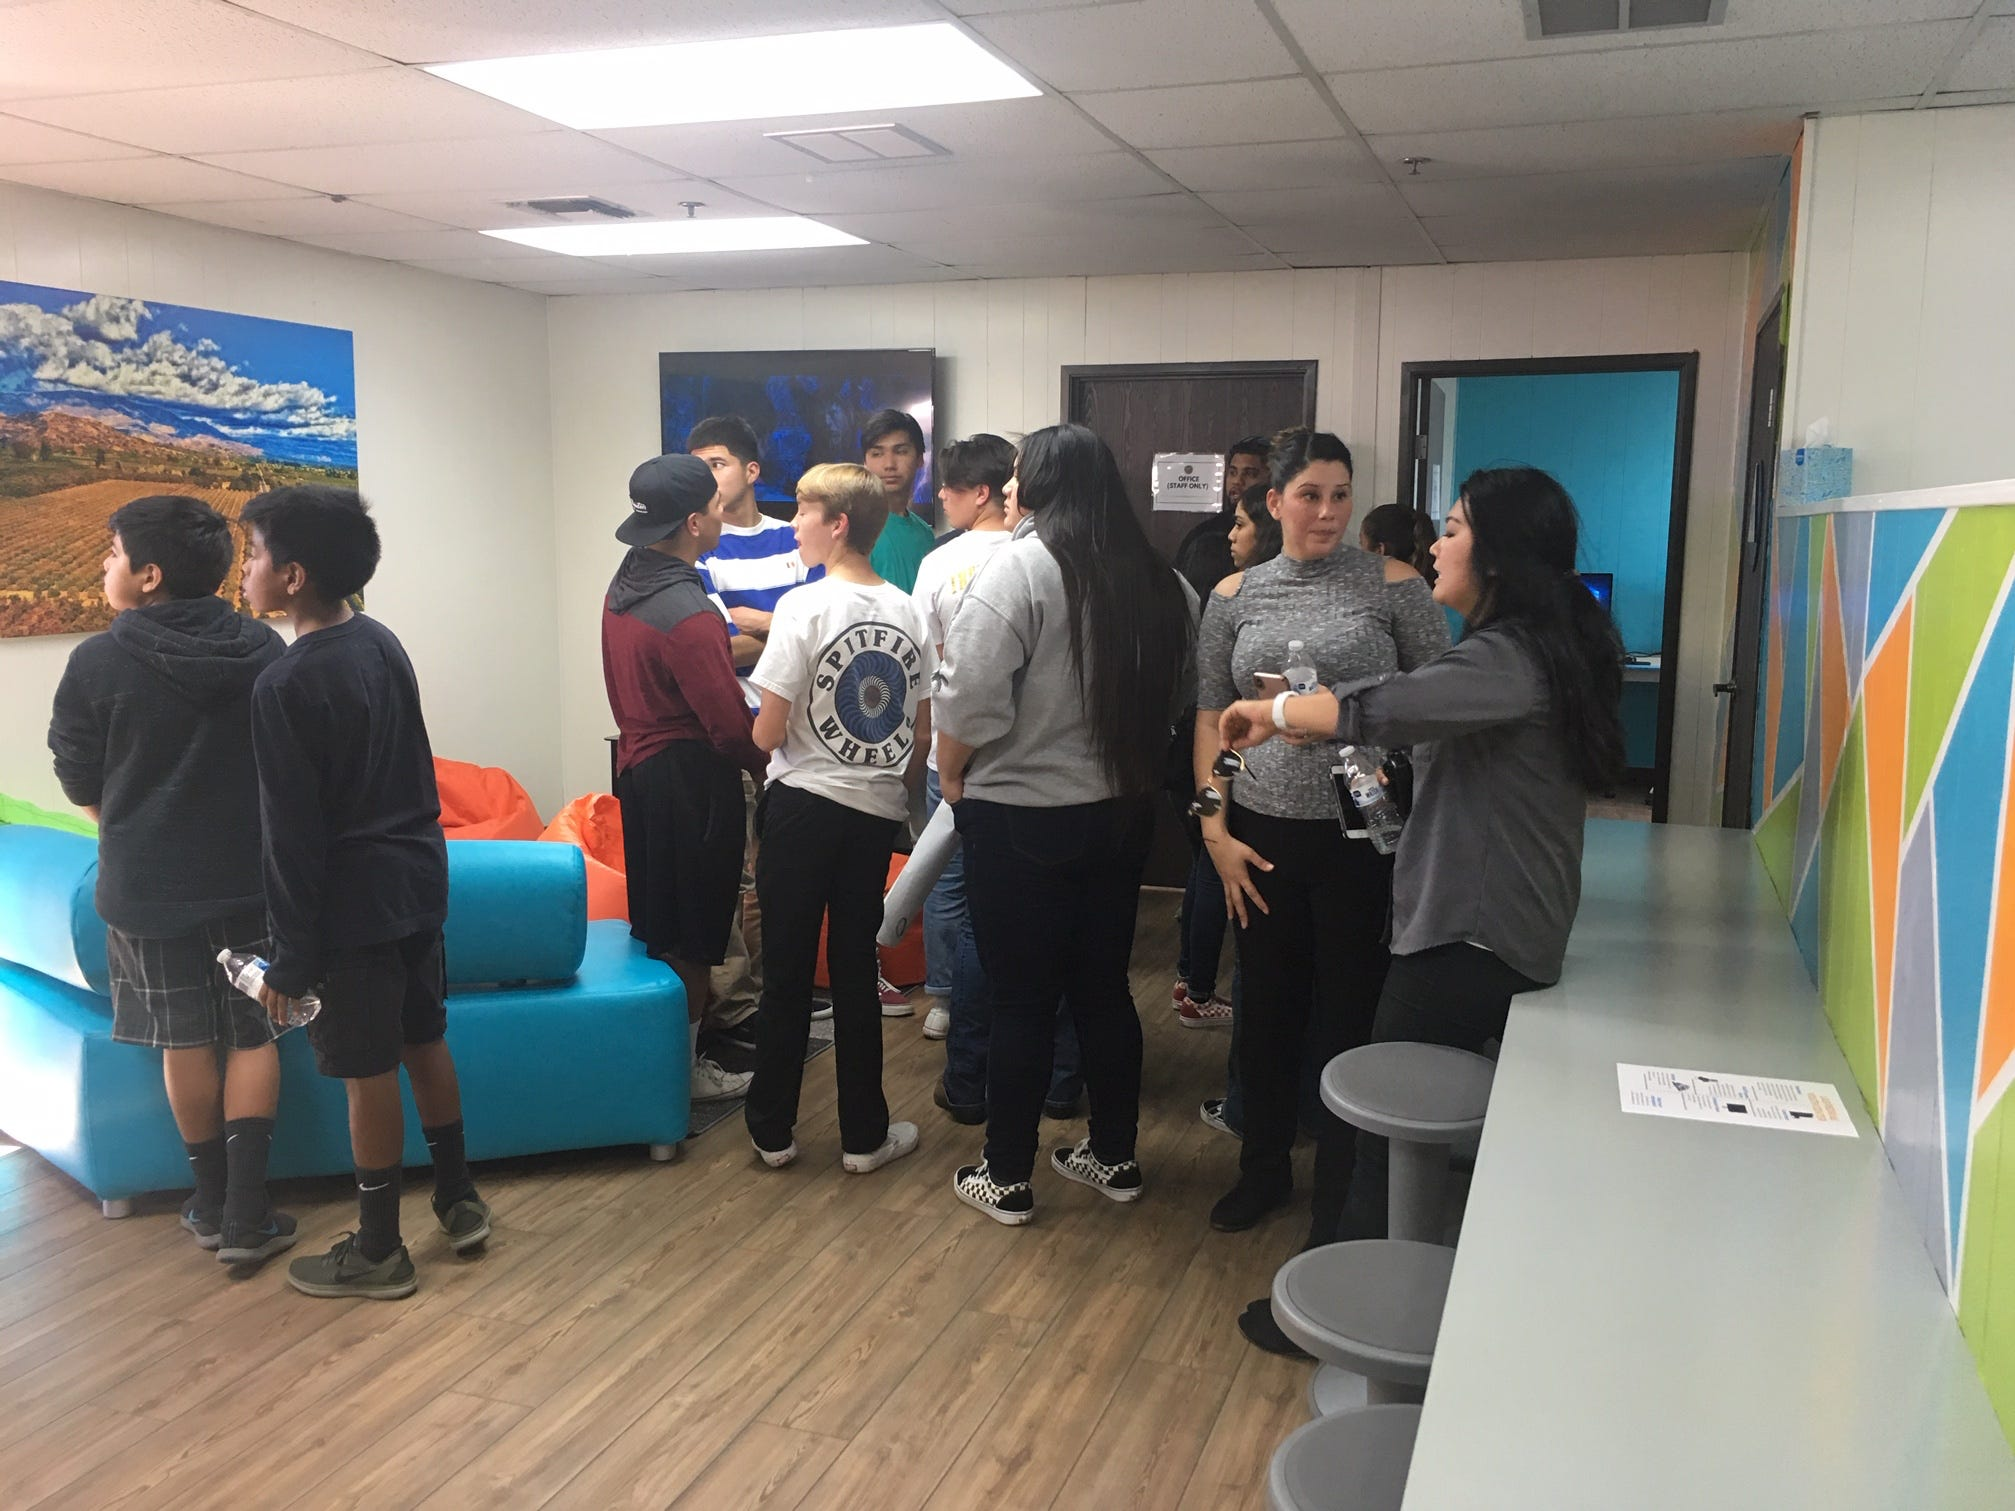 Youths tour the new teen center in Santa Paula during its grand opening Jan. 25. The center opened this week.